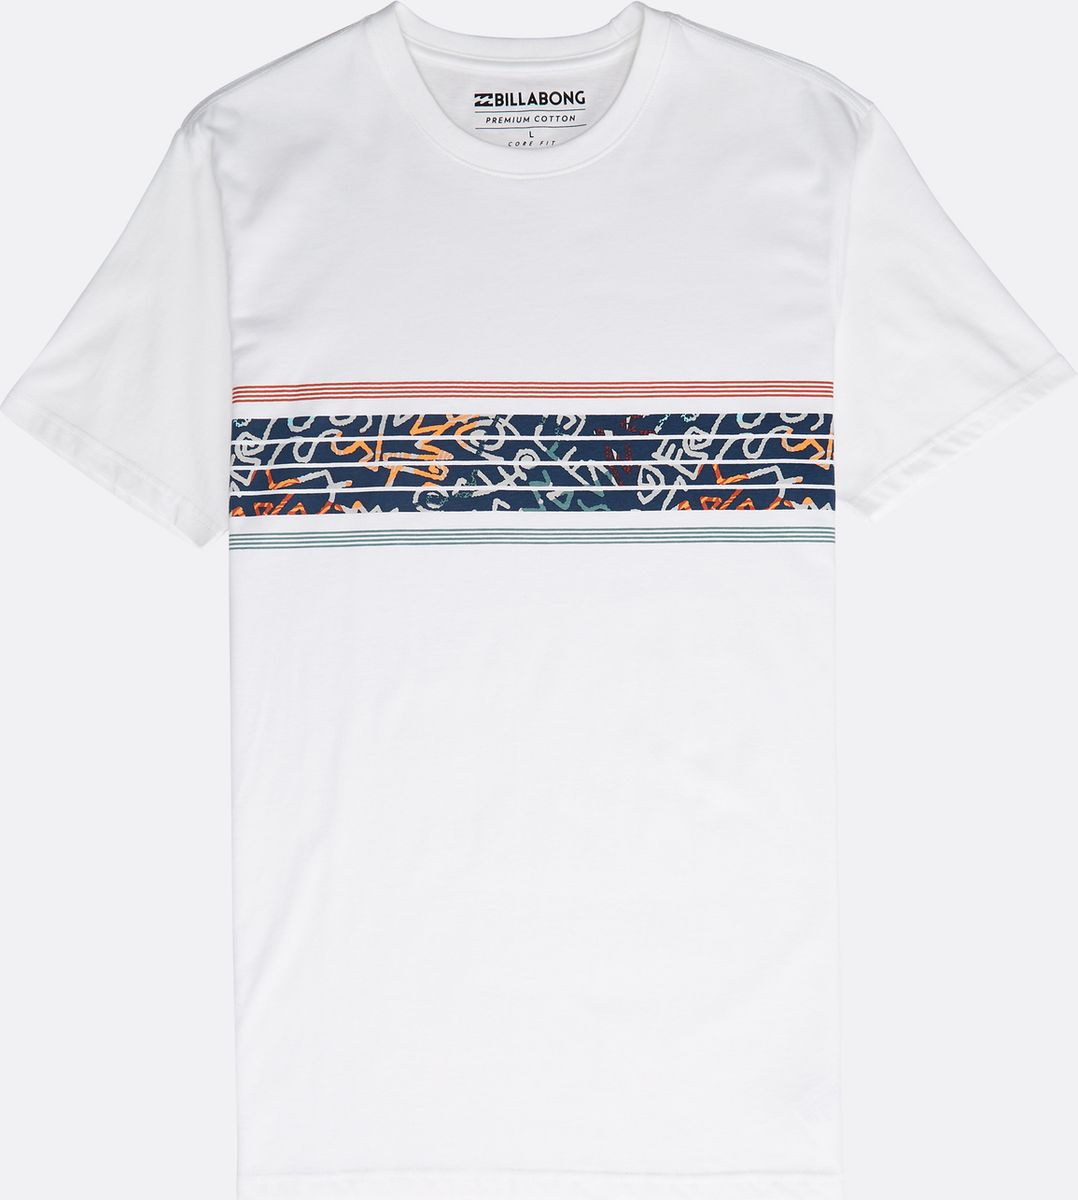 Футболка Billabong Team Stripes Tee Ss футболка хлопковая nike tee club19 ss aj1504 451